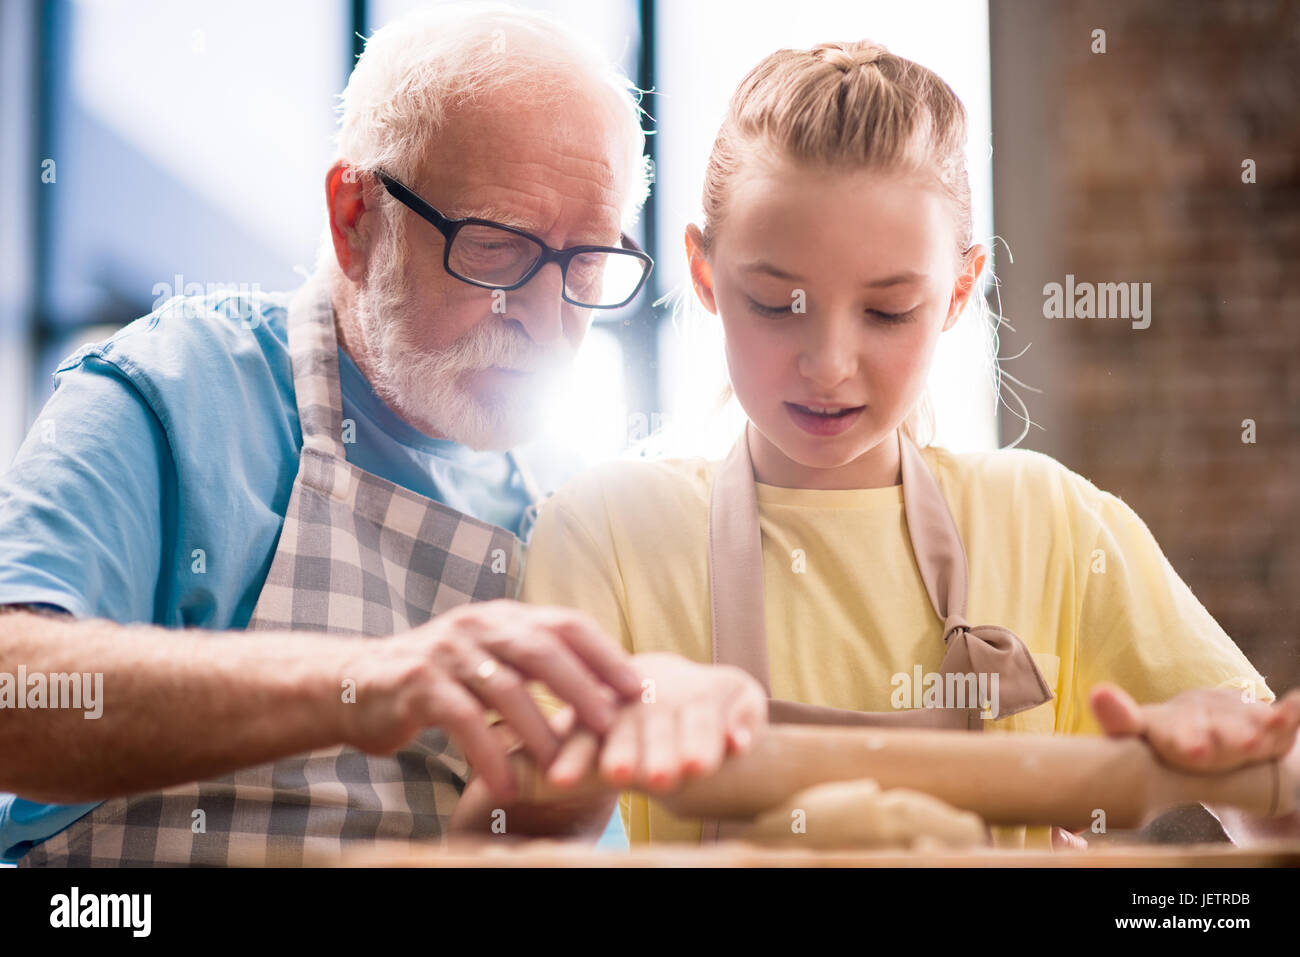 grandchild and grandfather cooking and making dough for cookies with kitchen utensils at kitchen table, cooking - Stock Image